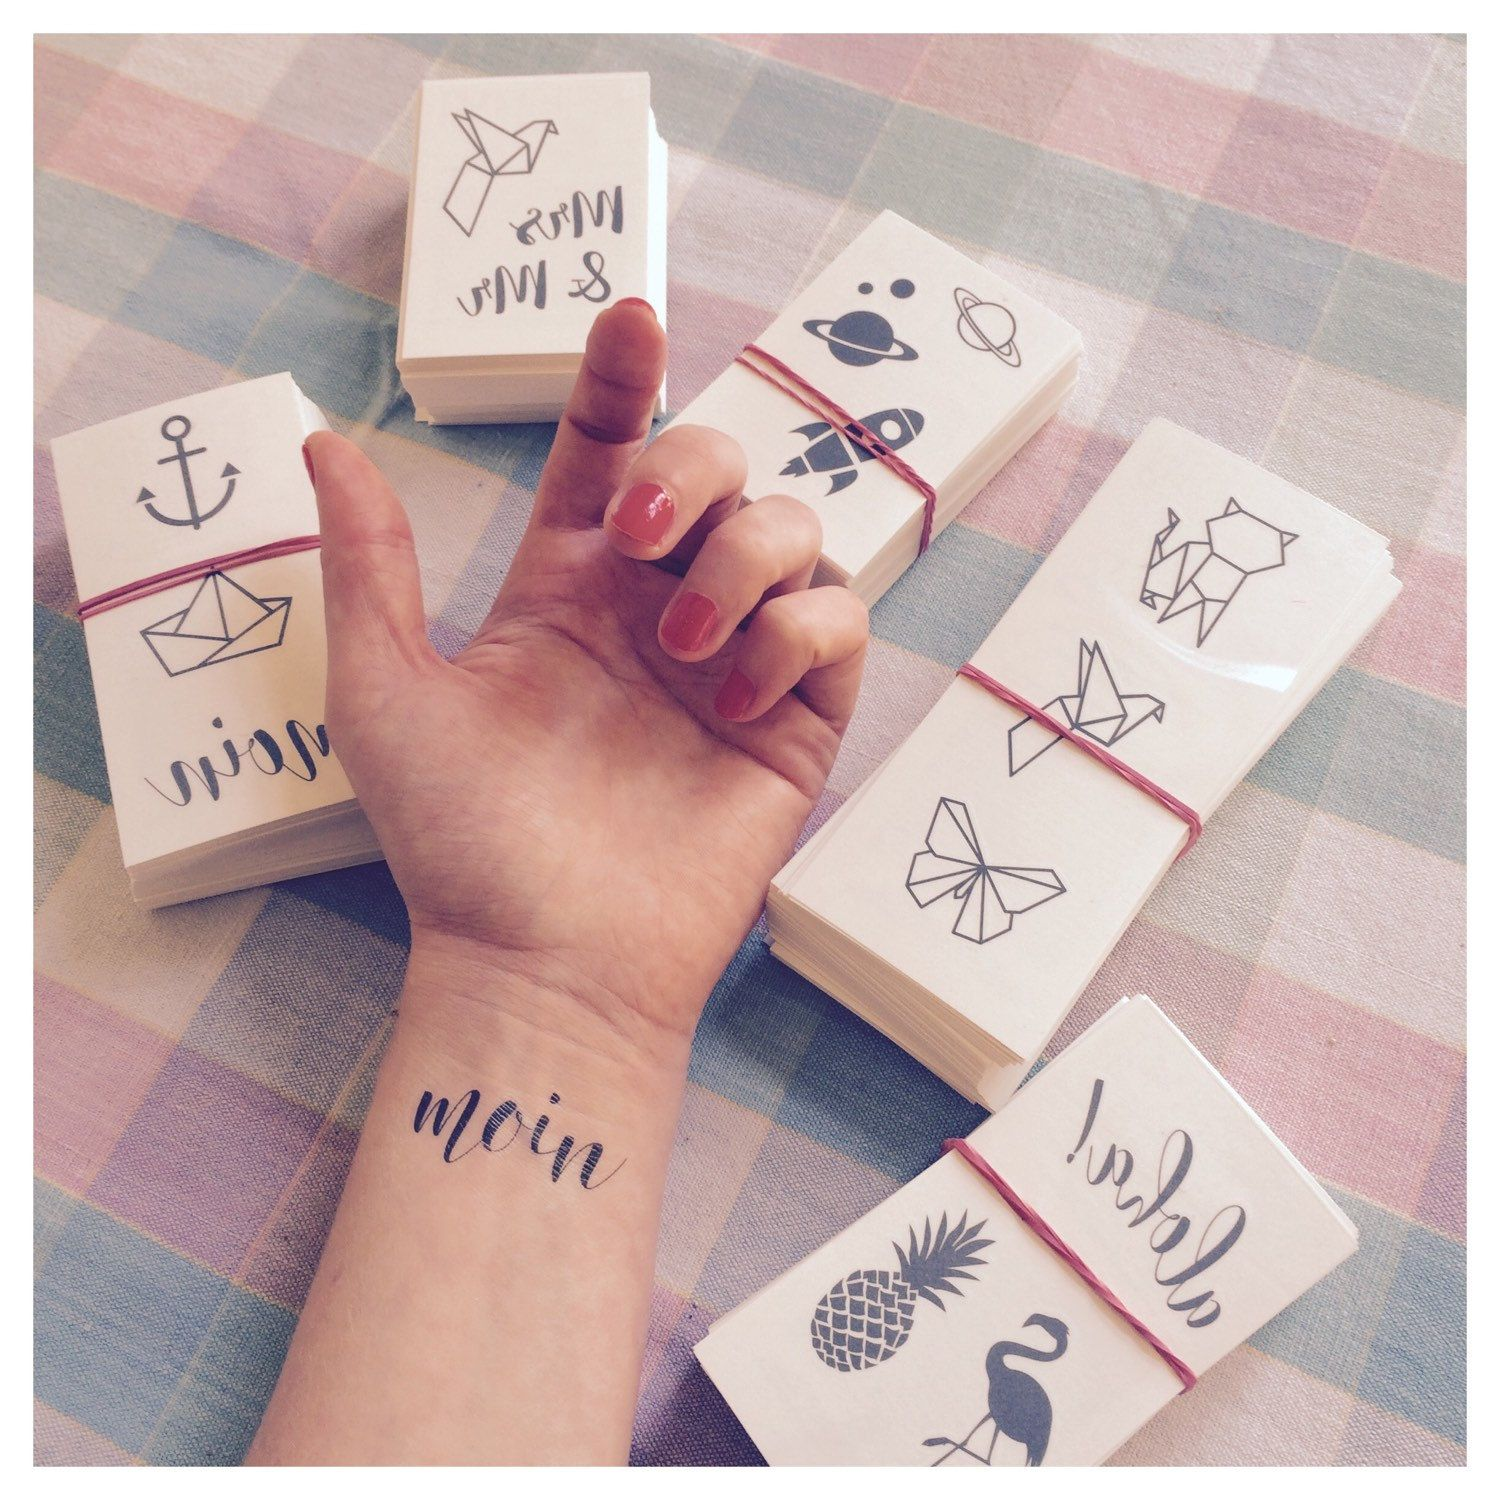 Our New Temporary Tattoo Designs Arrived Yeah Planets Rockets Anchor Paperboat Flamingo Origami Pineapple Aloha Moin